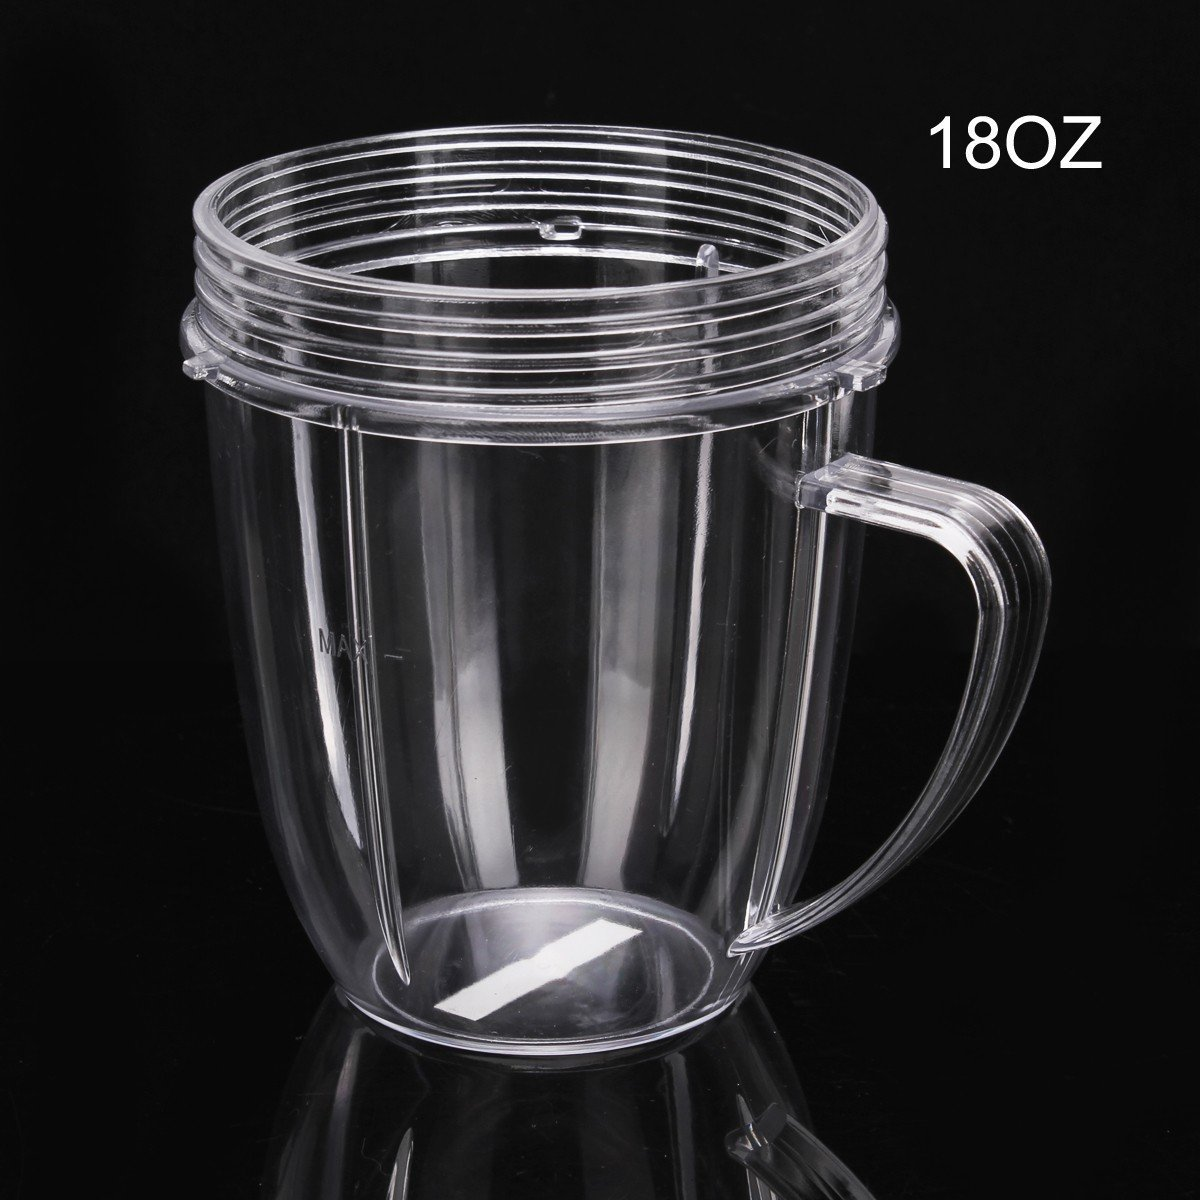 1 year warranty Sduck Replacement Parts for Nutribullet 18 OZ Mug Cup Blender Juicer Mixer accessories//Replacement Part for Nutri Bullet